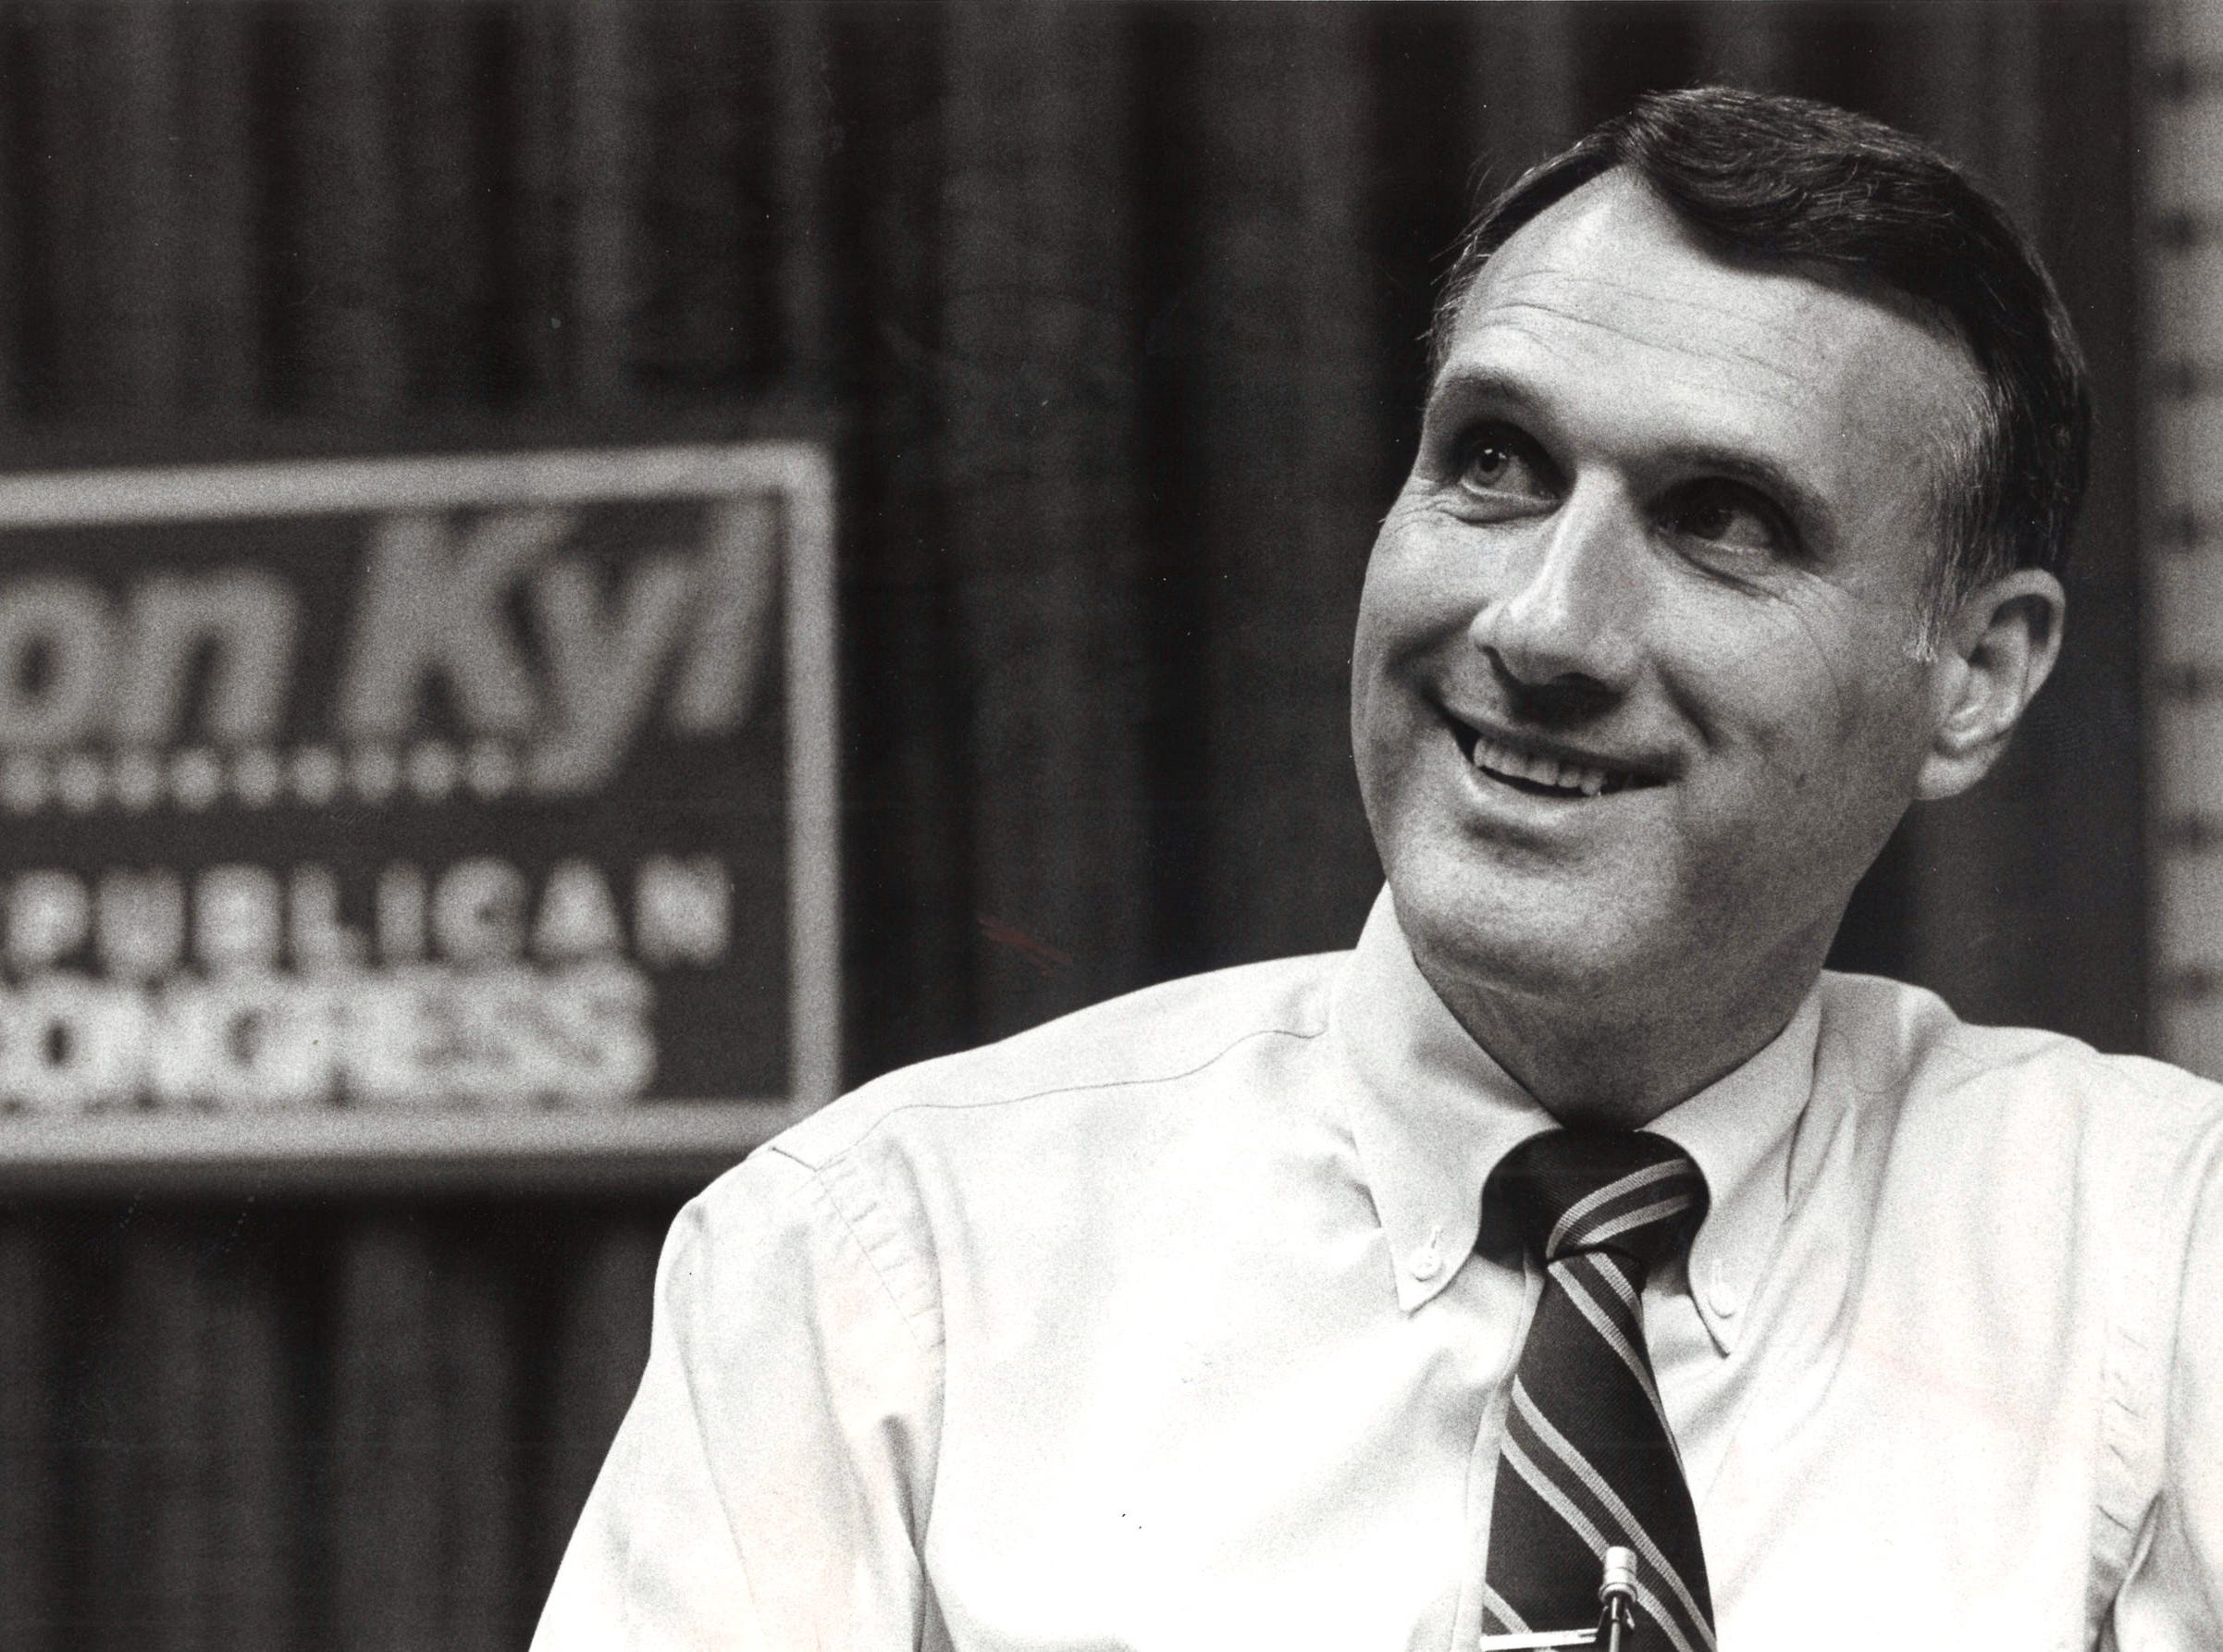 Arizona Rep. Jon Kyl, Sept. 9, 1986.